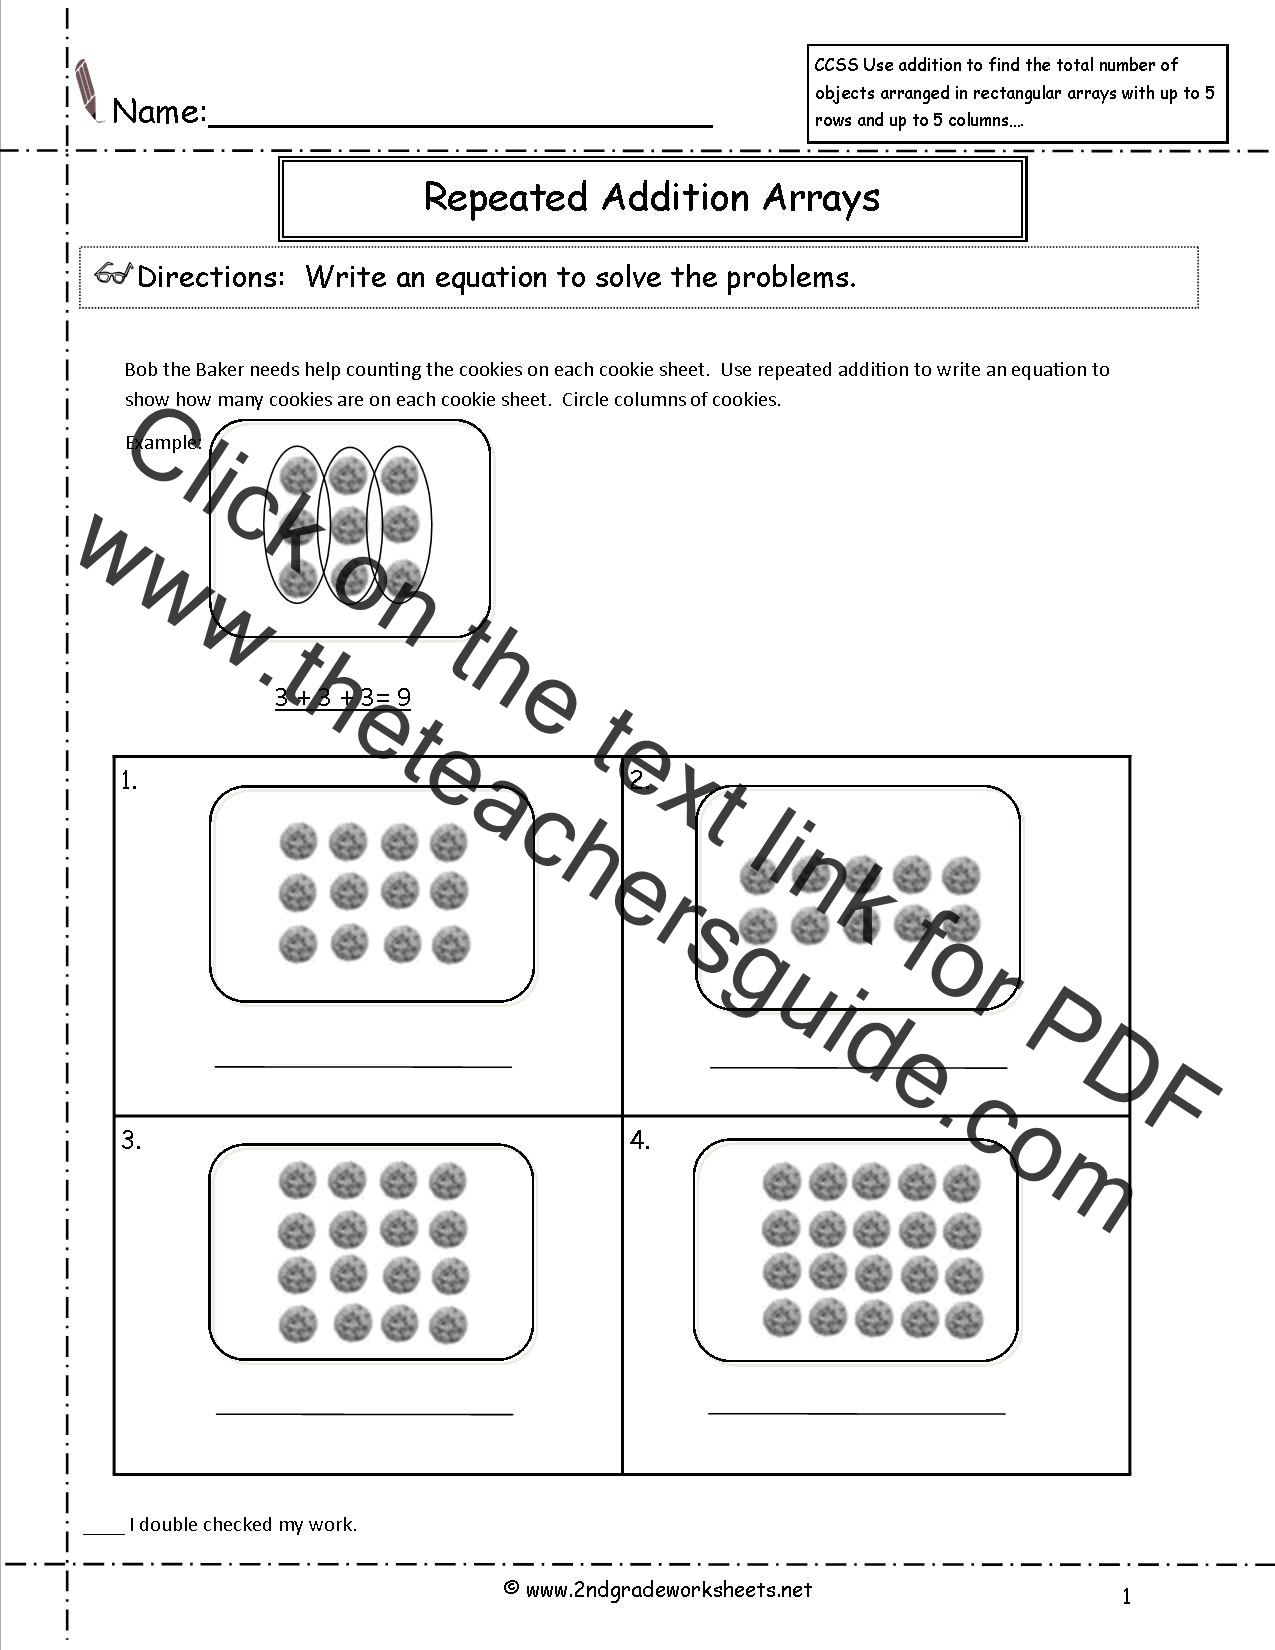 Printables Common Core 2nd Grade Math Worksheets 2nd grade math common core state standards worksheets ccss 2 oa 4 worksheets